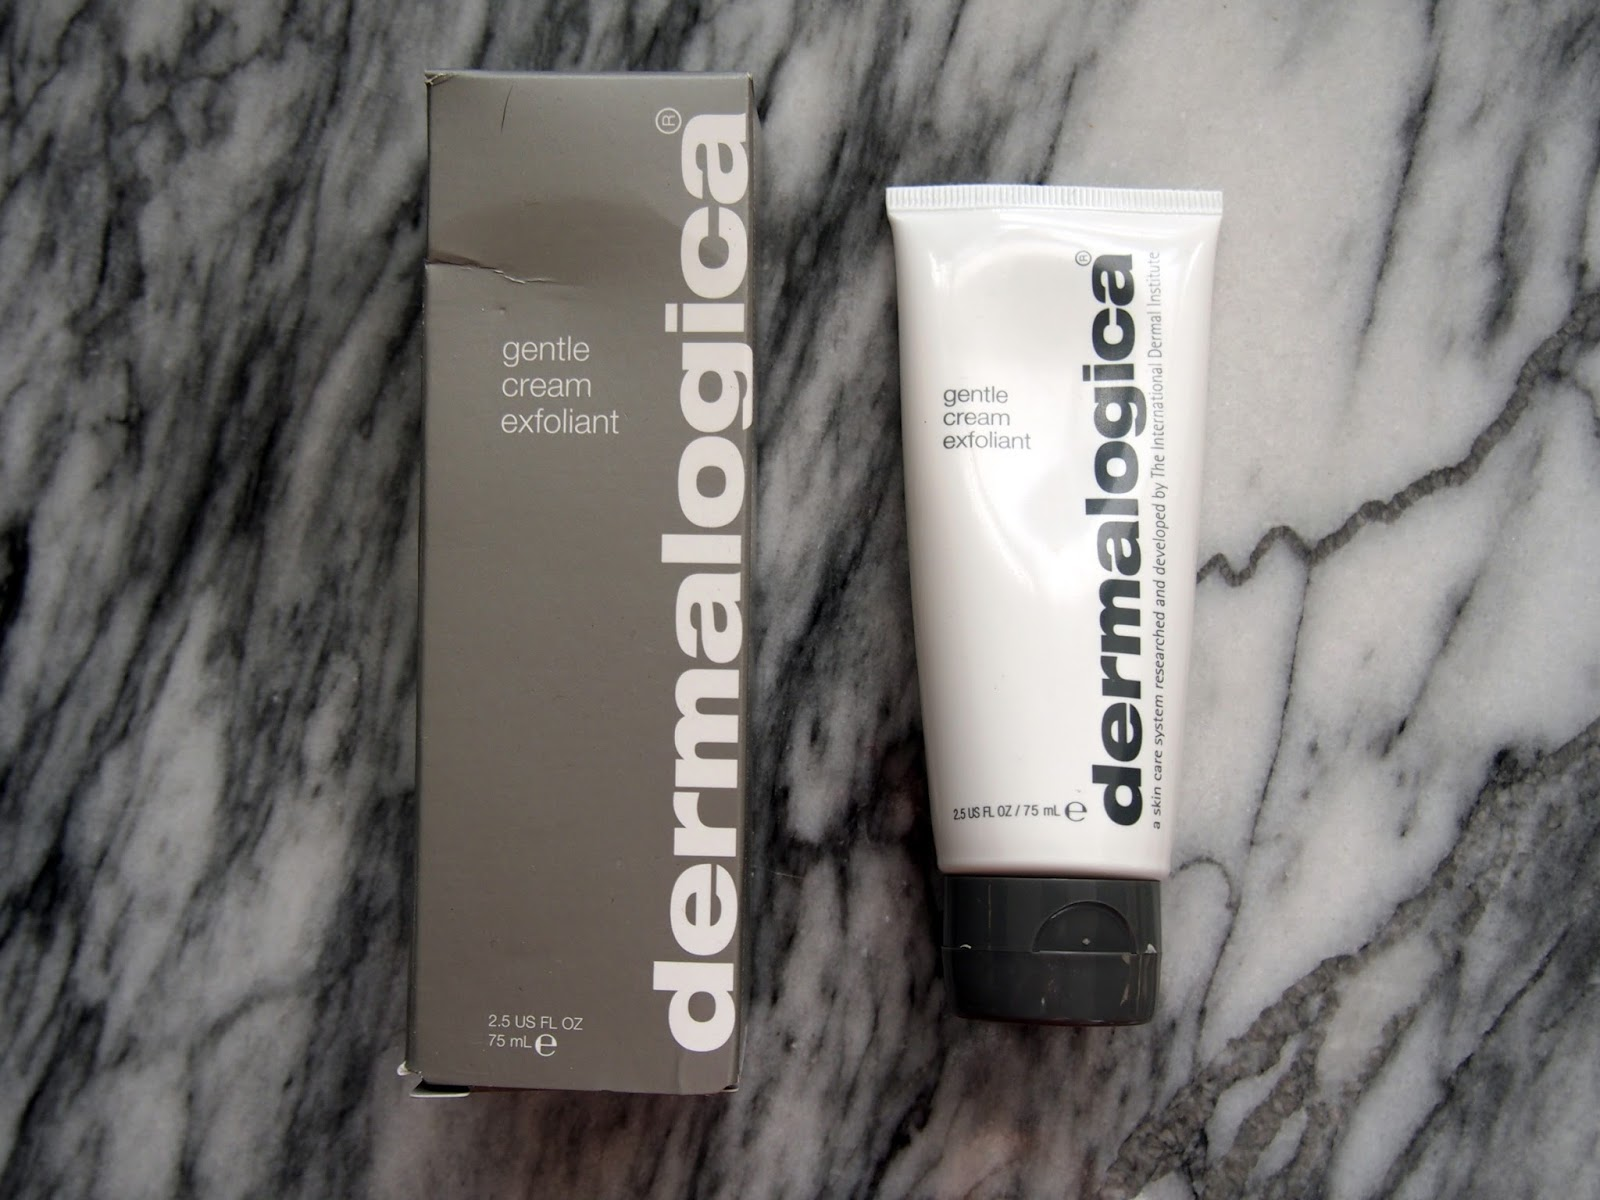 Review Dermalogica Gentle Cream Exfoliant Shrinking Wallet